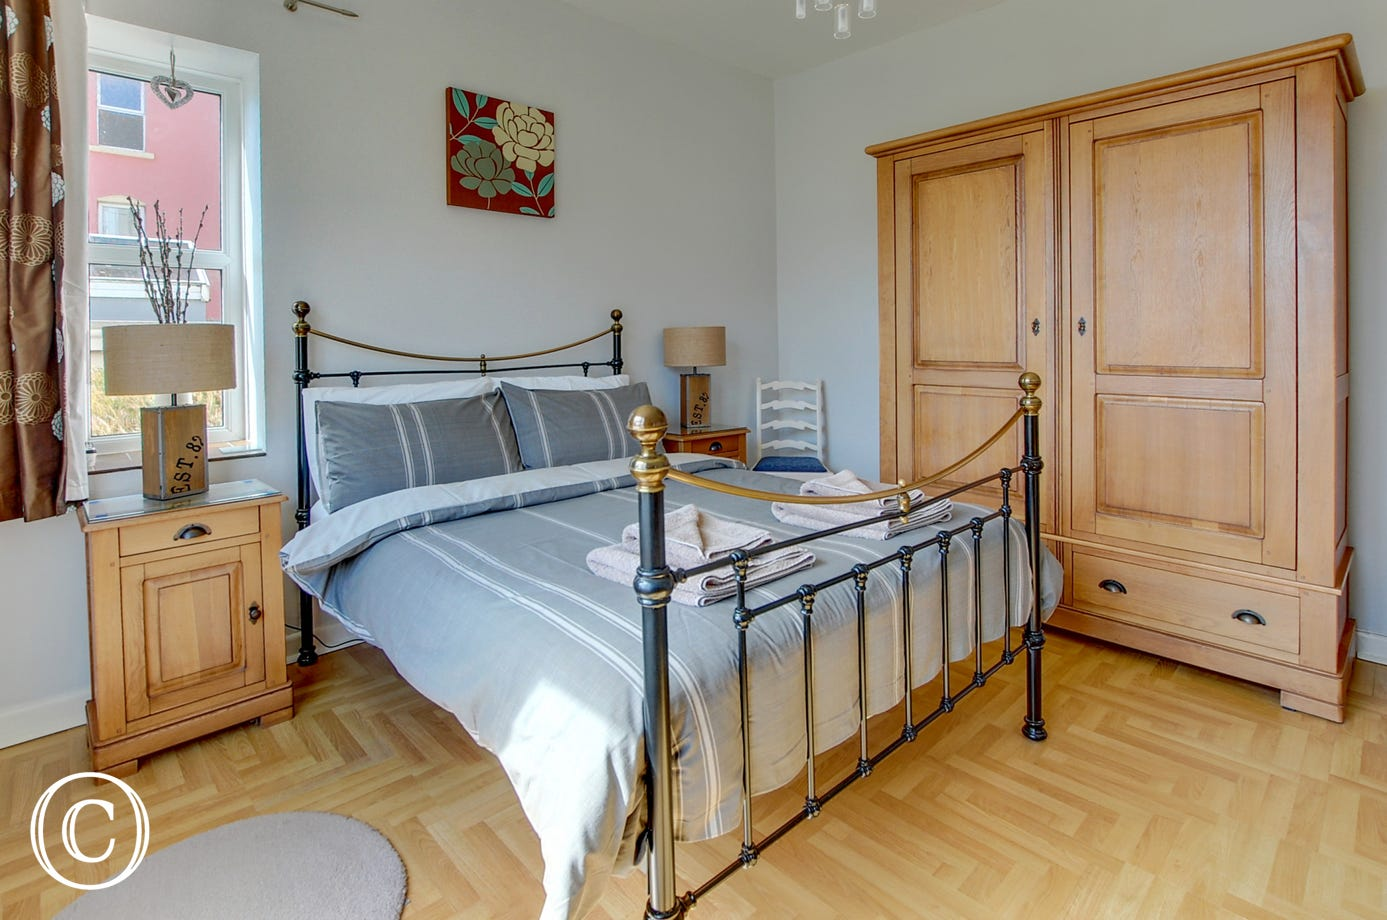 Master bedroom with double bed and ample wardrobe space